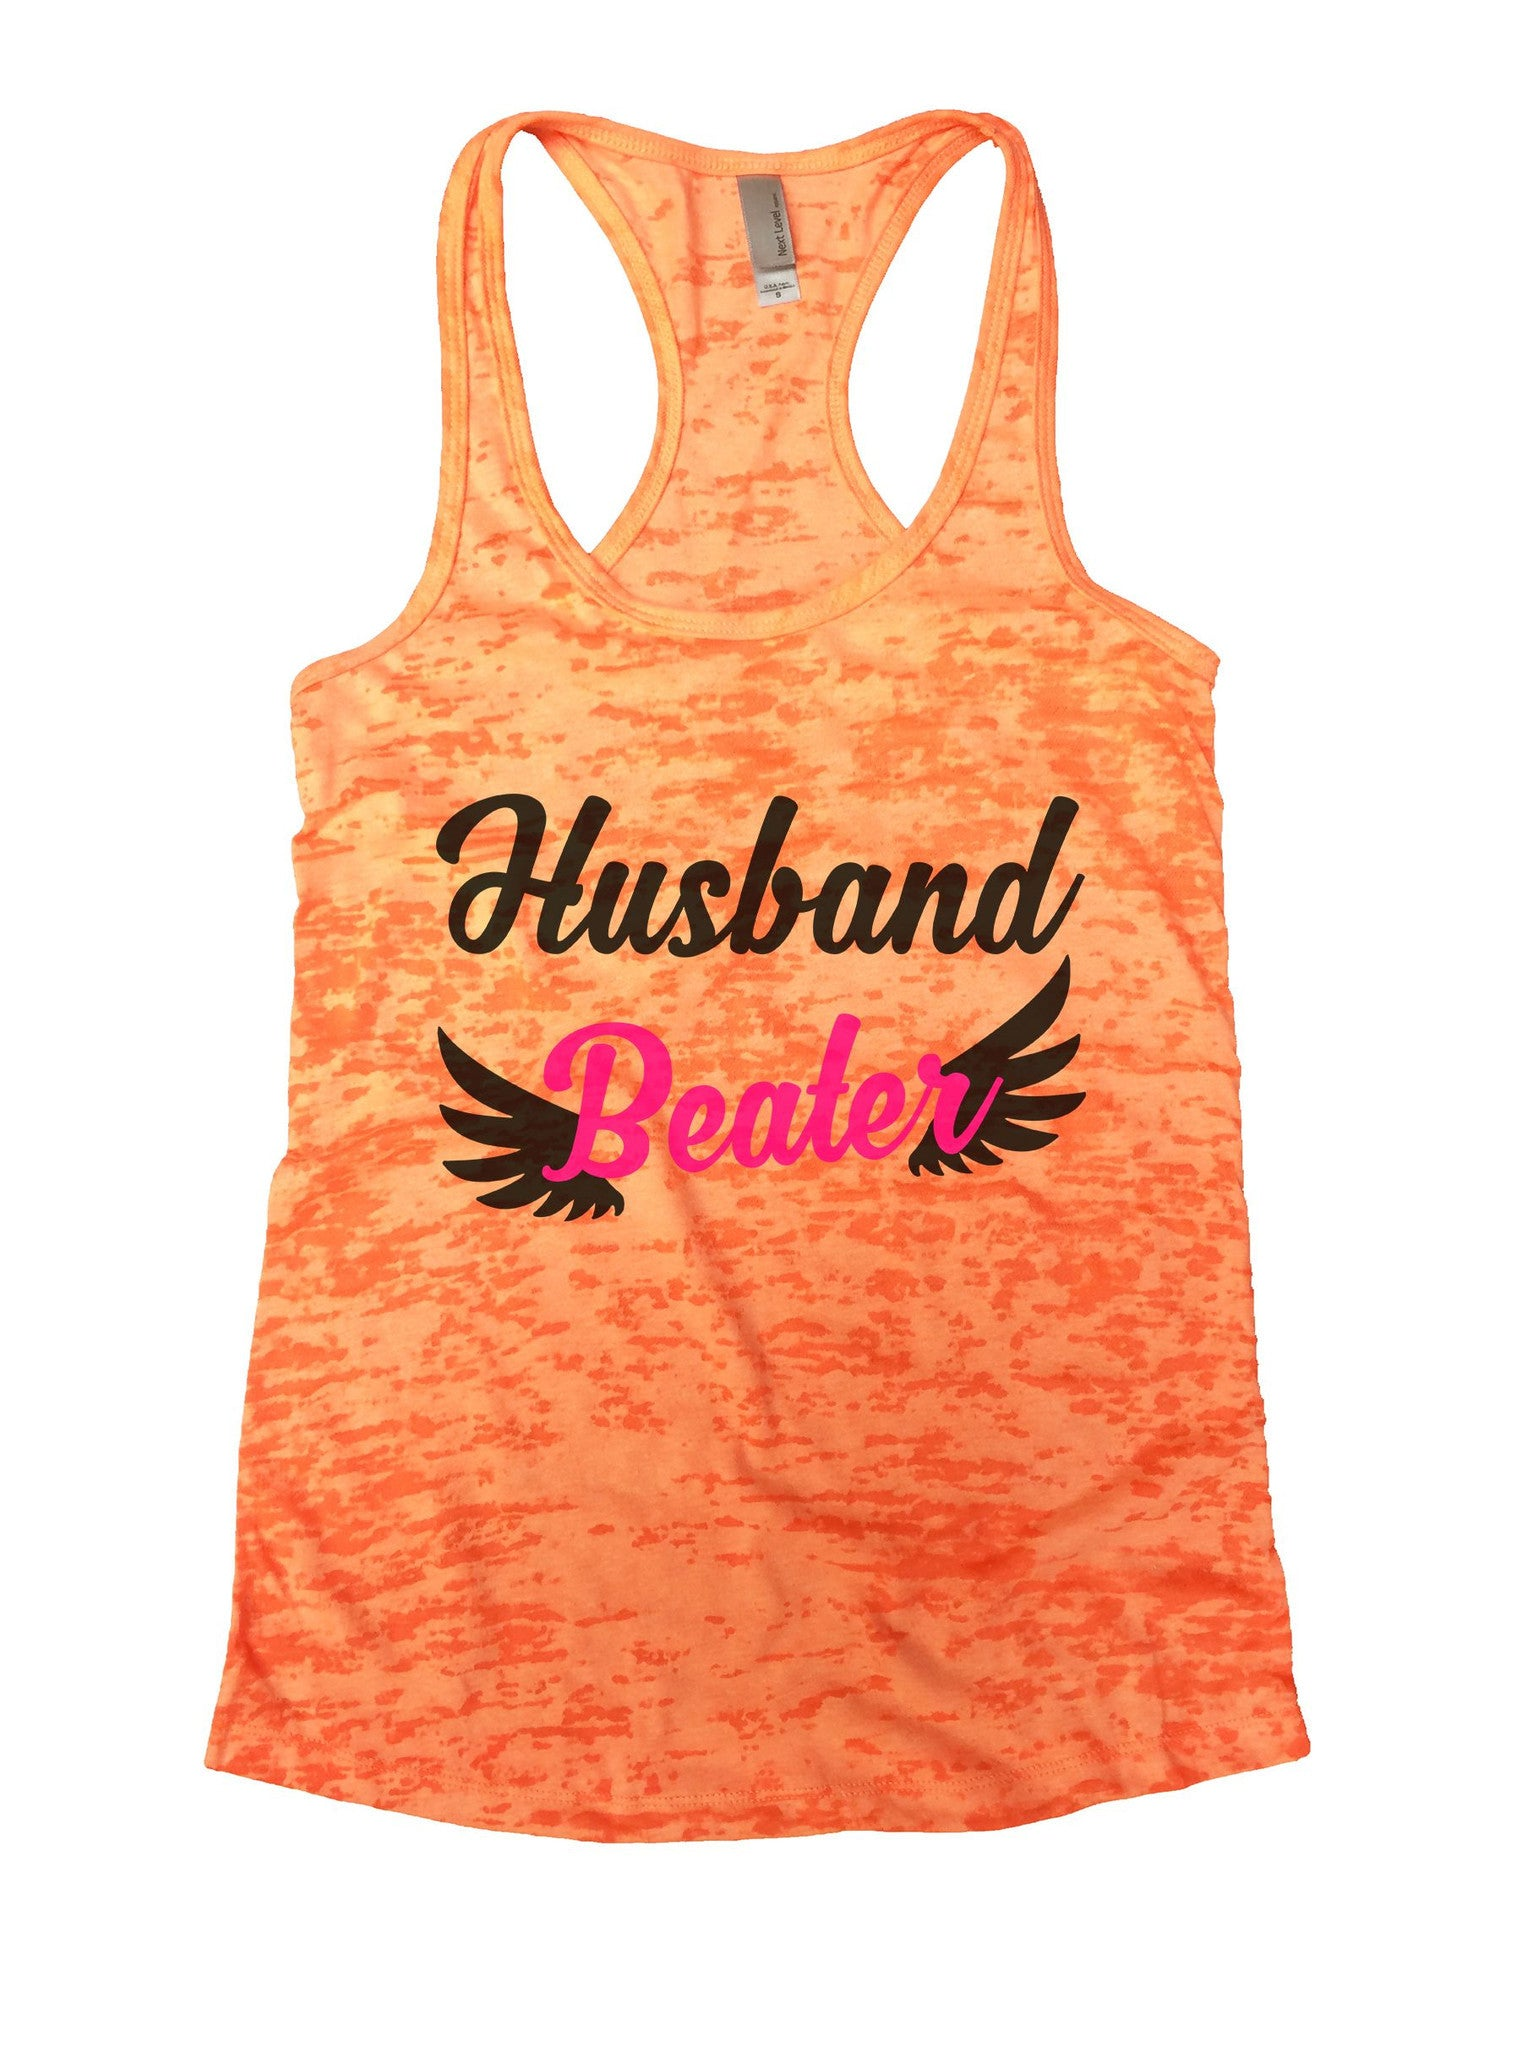 Husband Beater Burnout Tank Top By BurnoutTankTops.com - 1067 - Funny Shirts Tank Tops Burnouts and Triblends  - 3